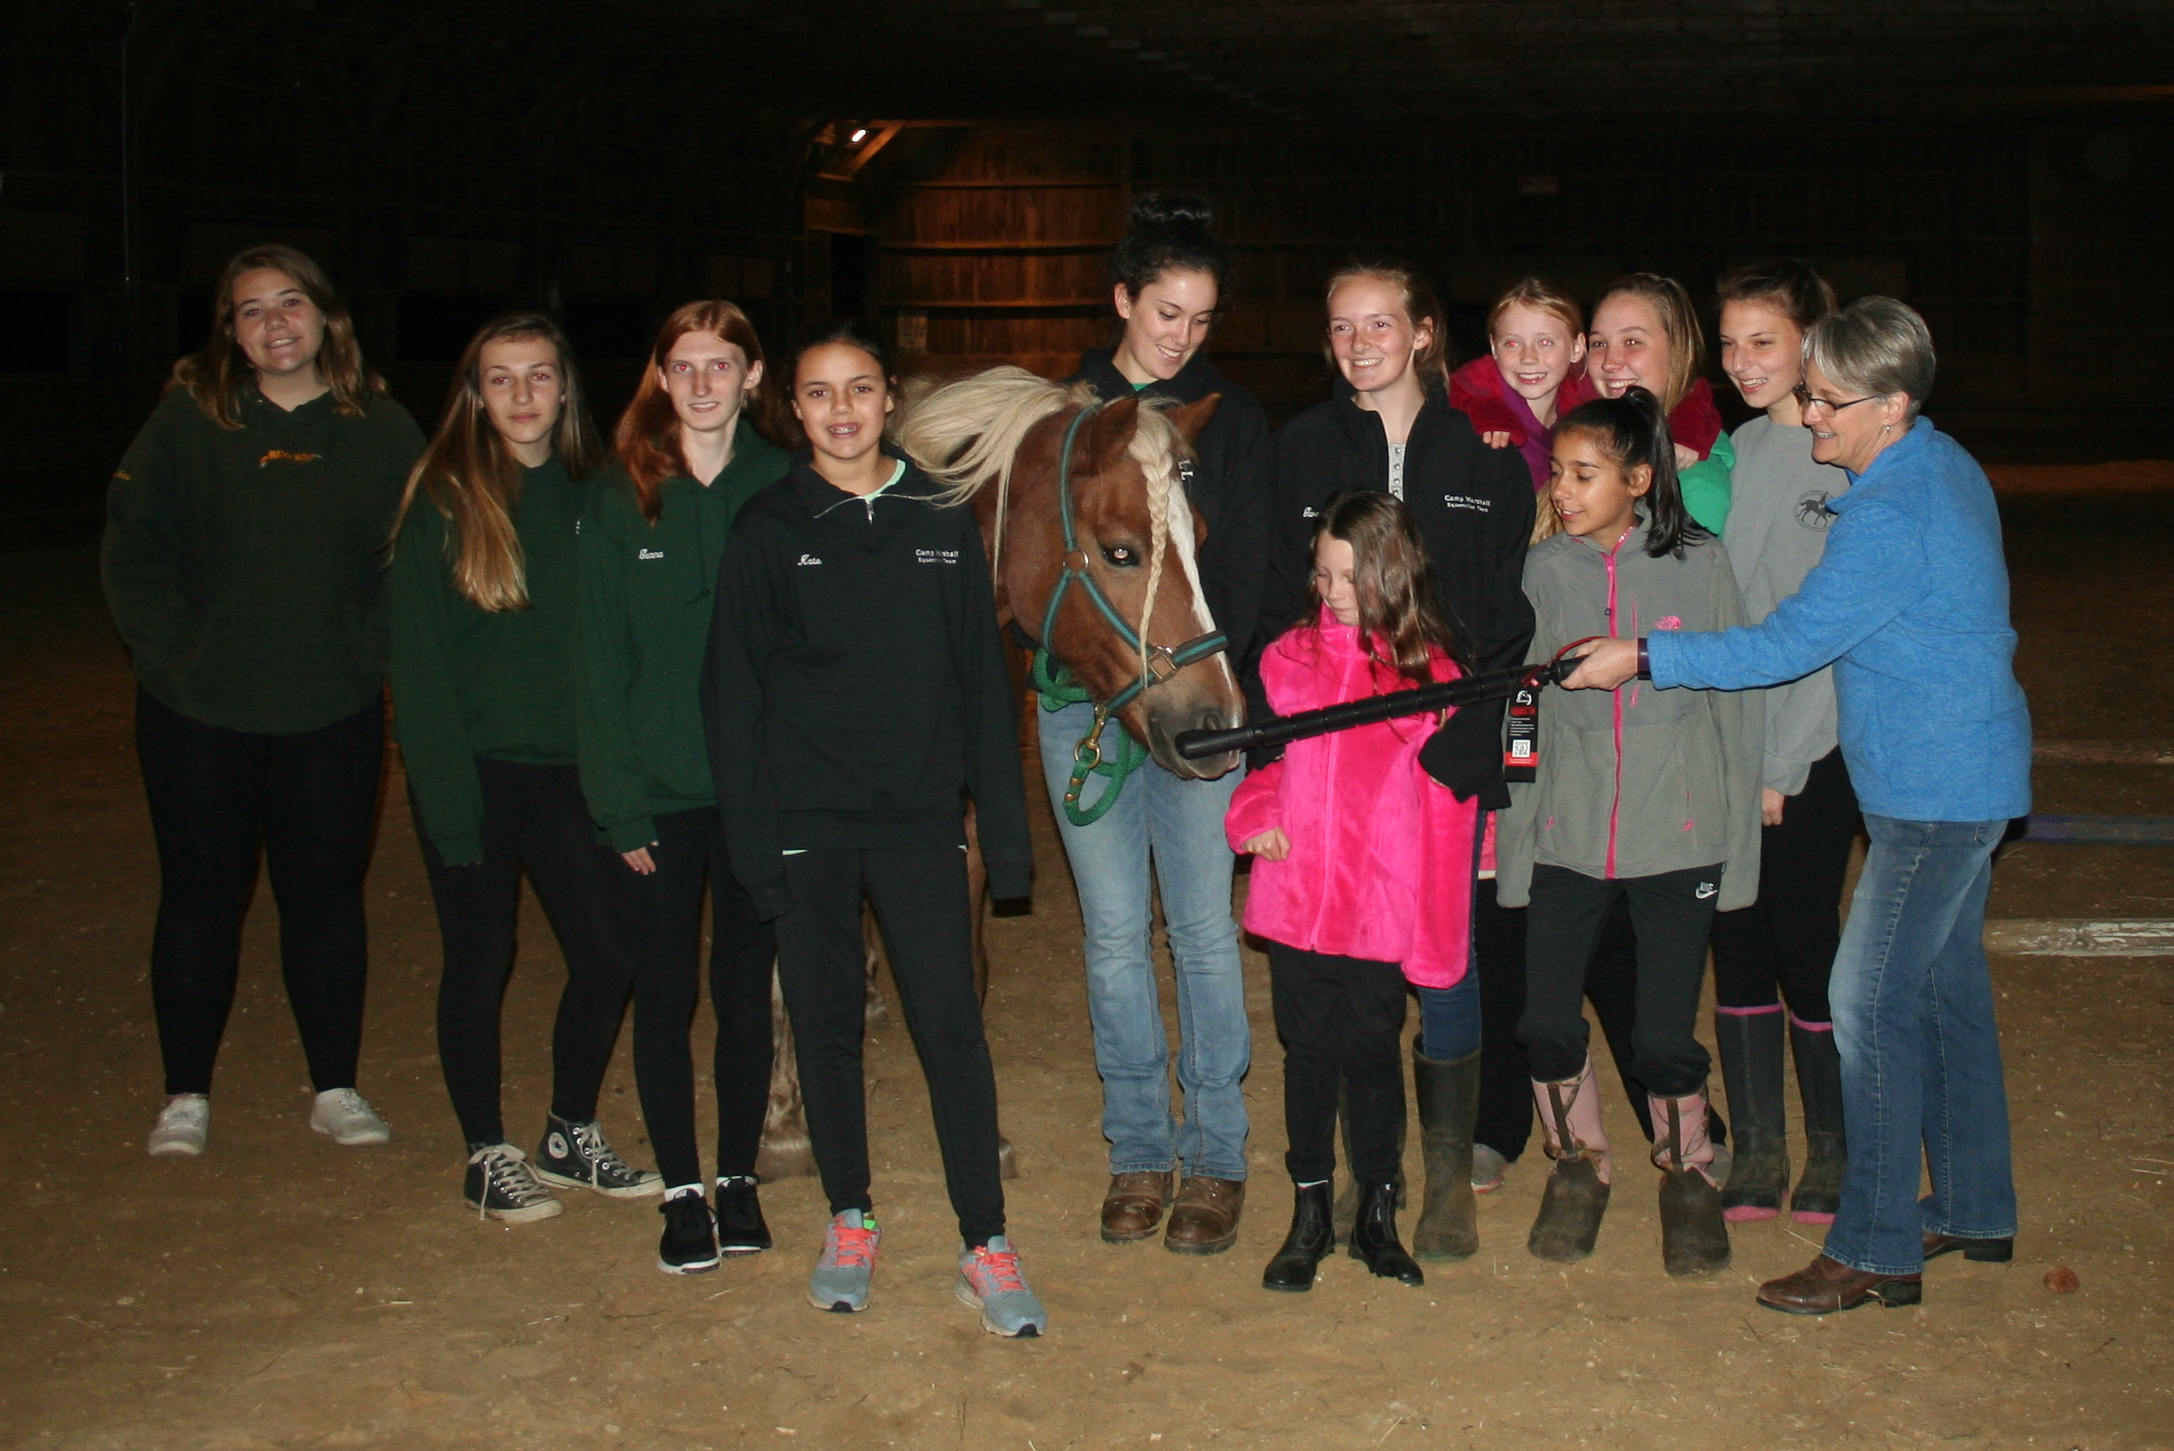 A visit with the Camp Marshall Equestrian Team